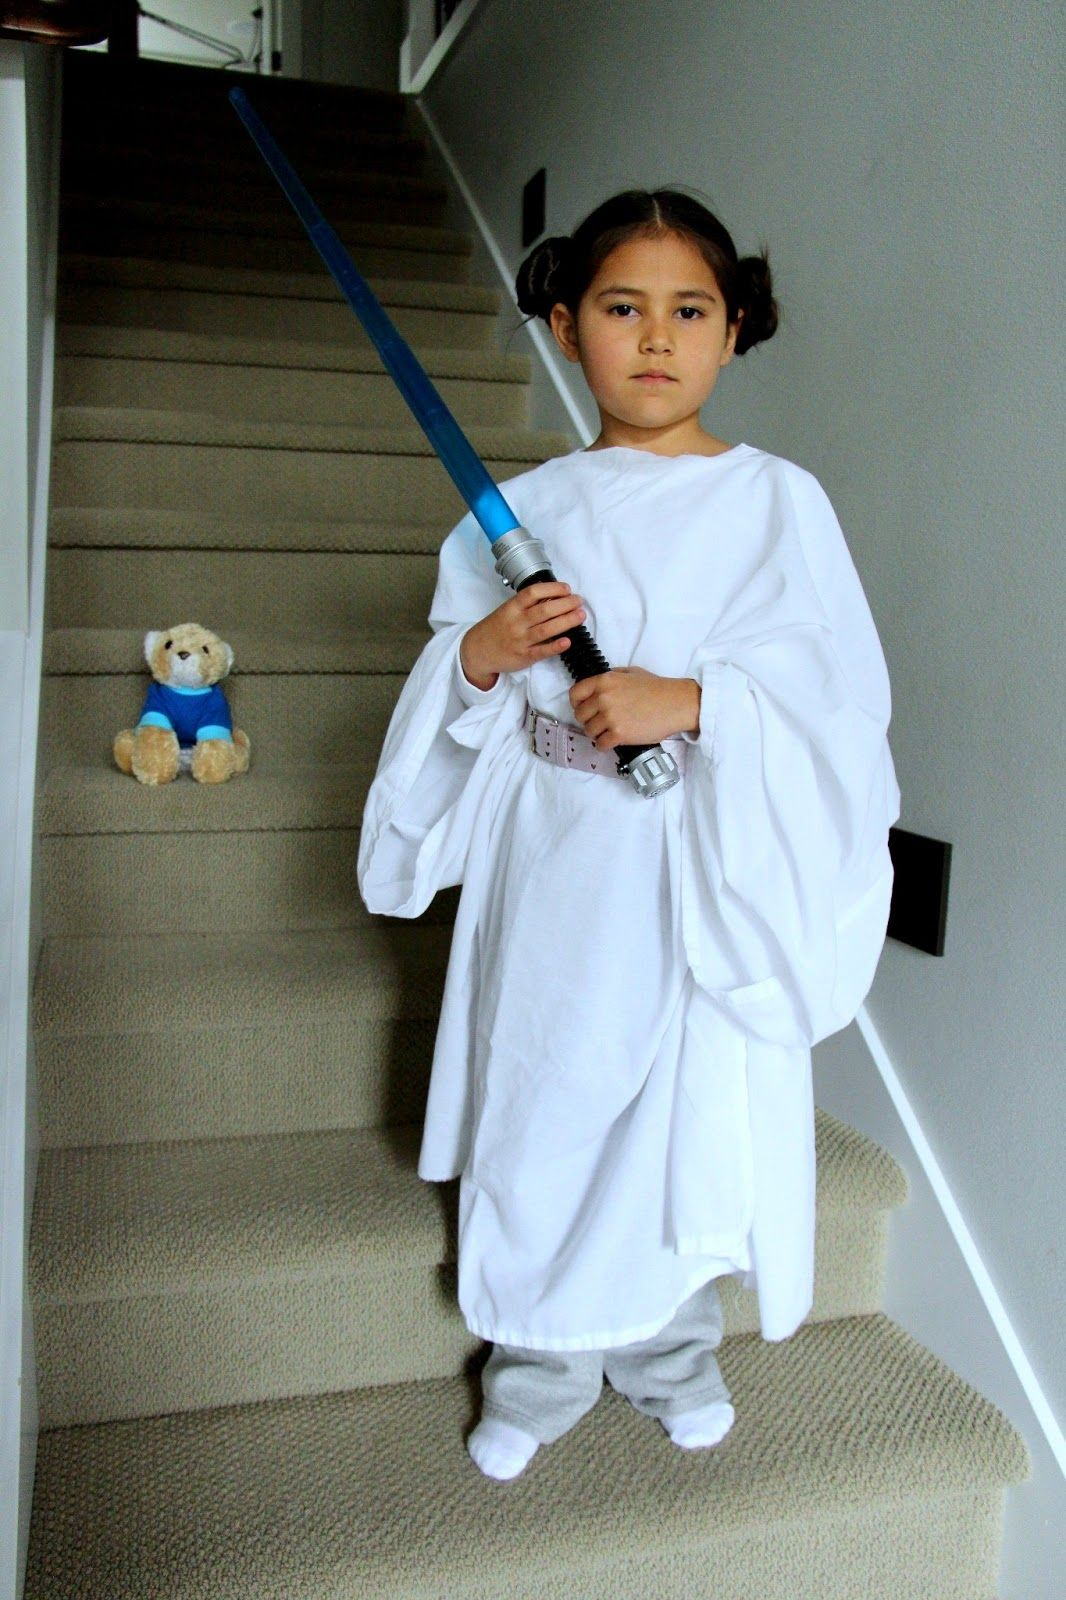 The Contemplative Creative: 2-Minute Princess Leia Costume